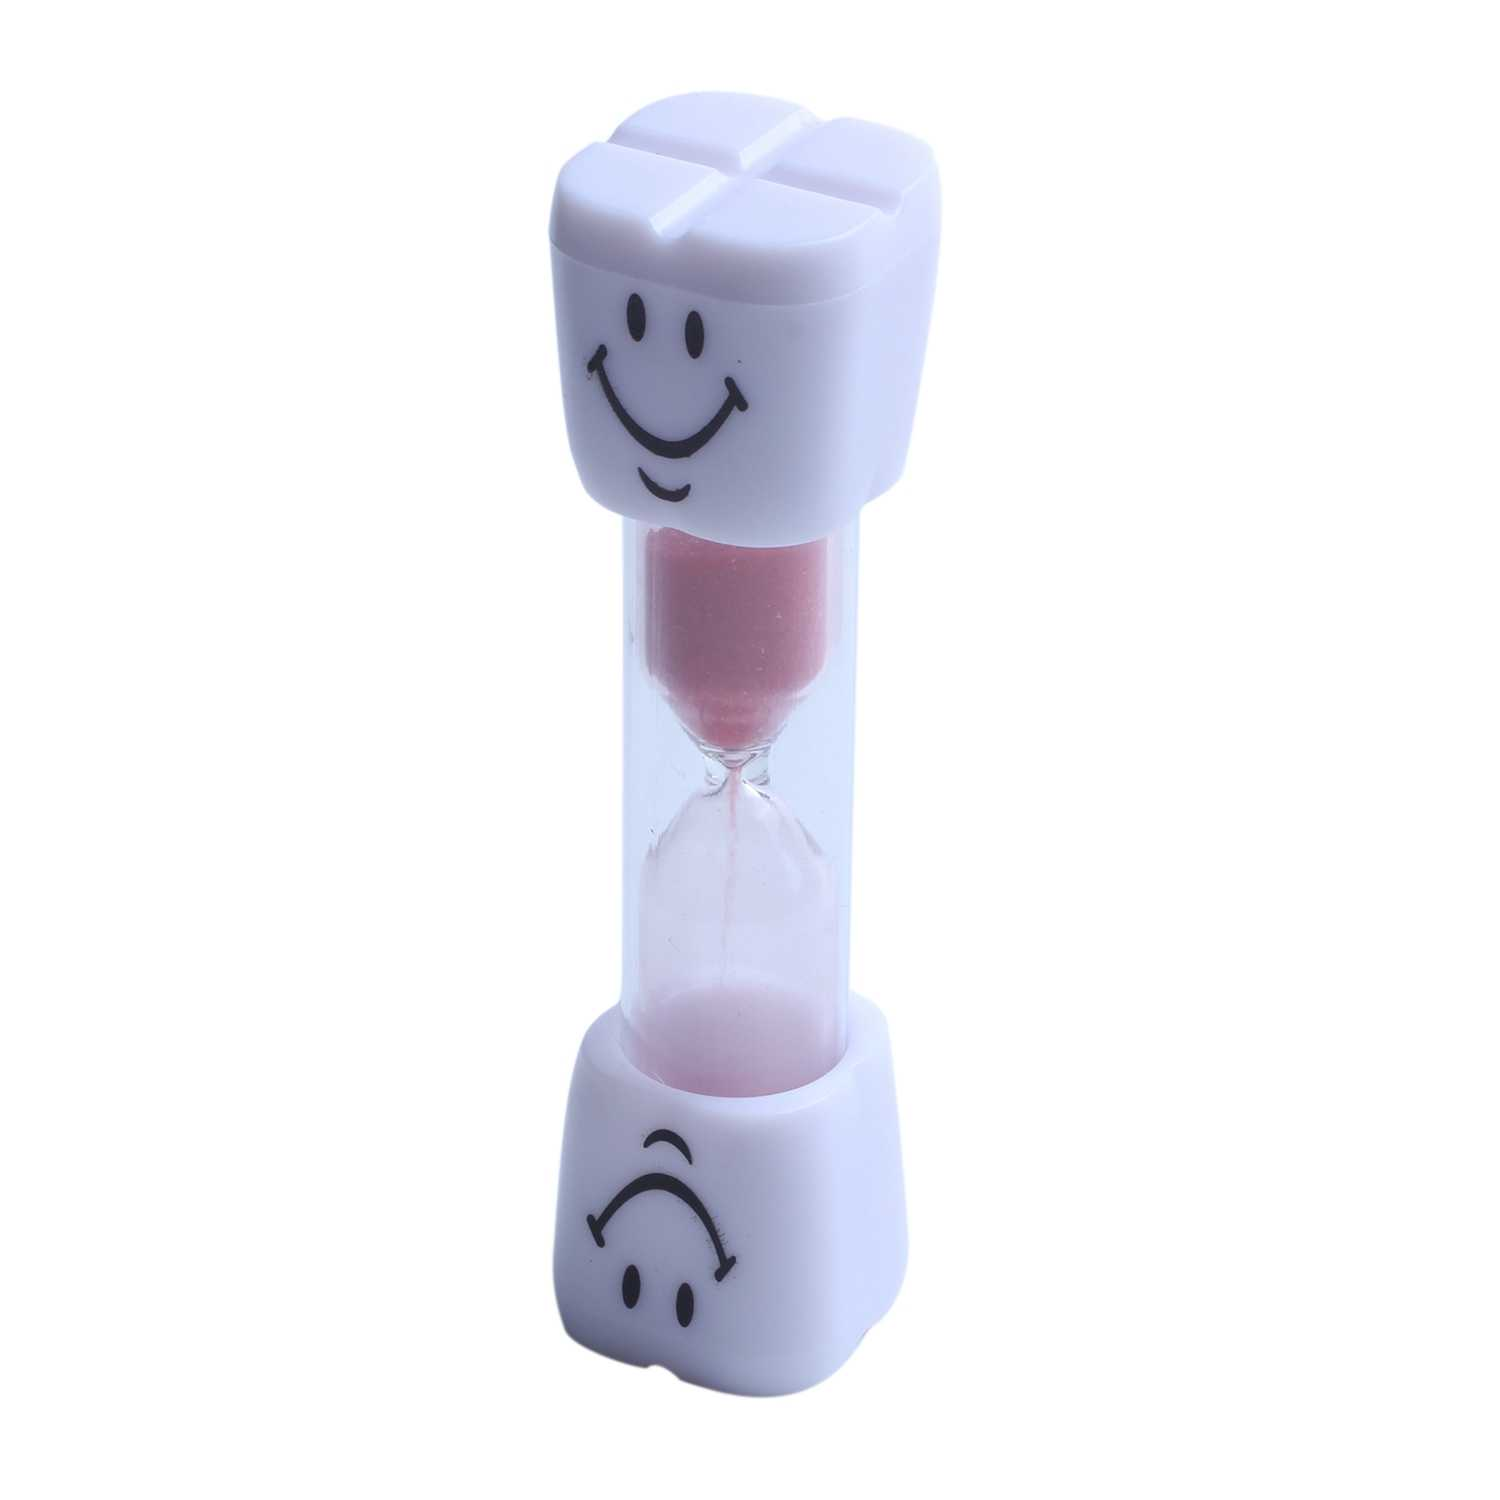 Hot-2 Minute Hourglass Kids Brush teeth Timer Smile Sand Egg Timer 2 Minutes Sandglass Timer red